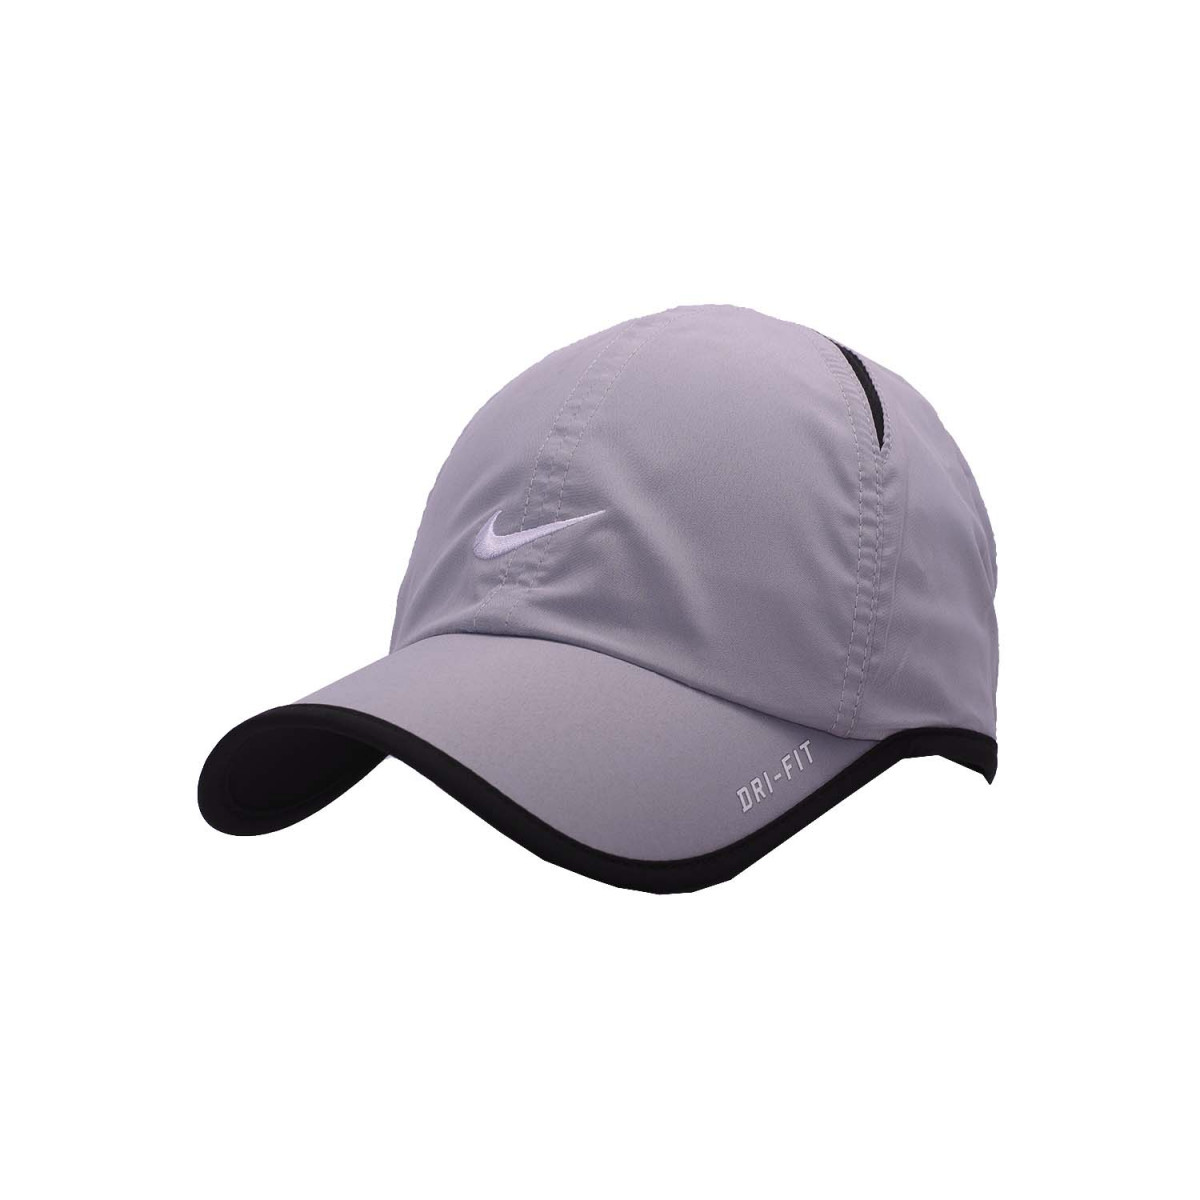 Gorra Nike Feather Light - Caps - Gorros - Accesorios - Mujer 2346f27dff3